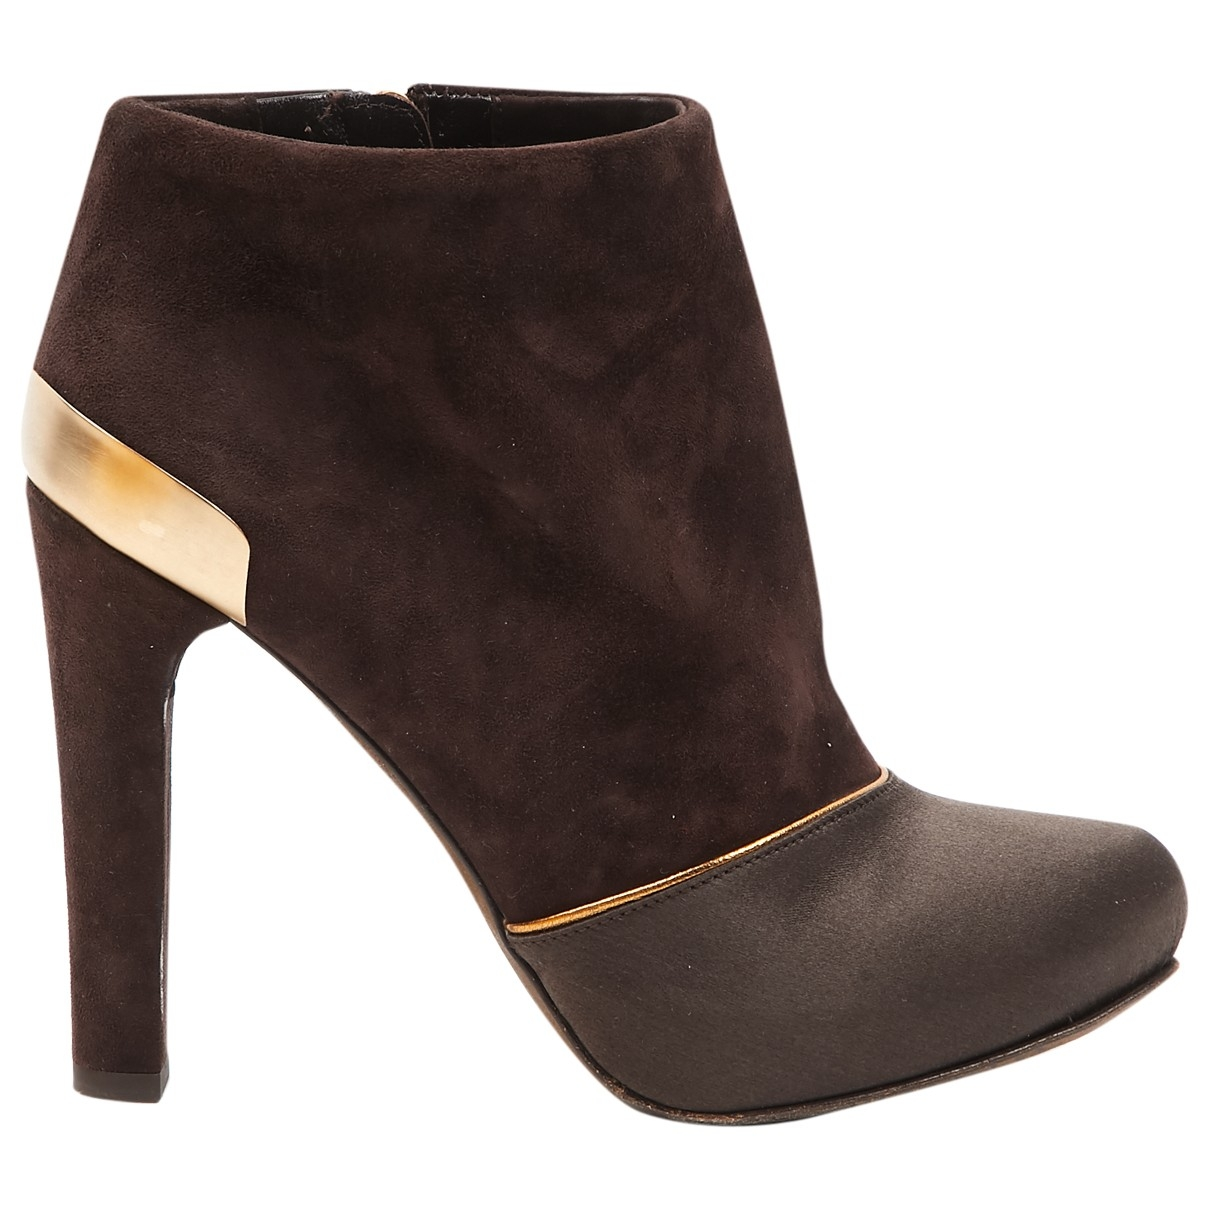 Fendi \N Brown Suede Ankle boots for Women 36 EU